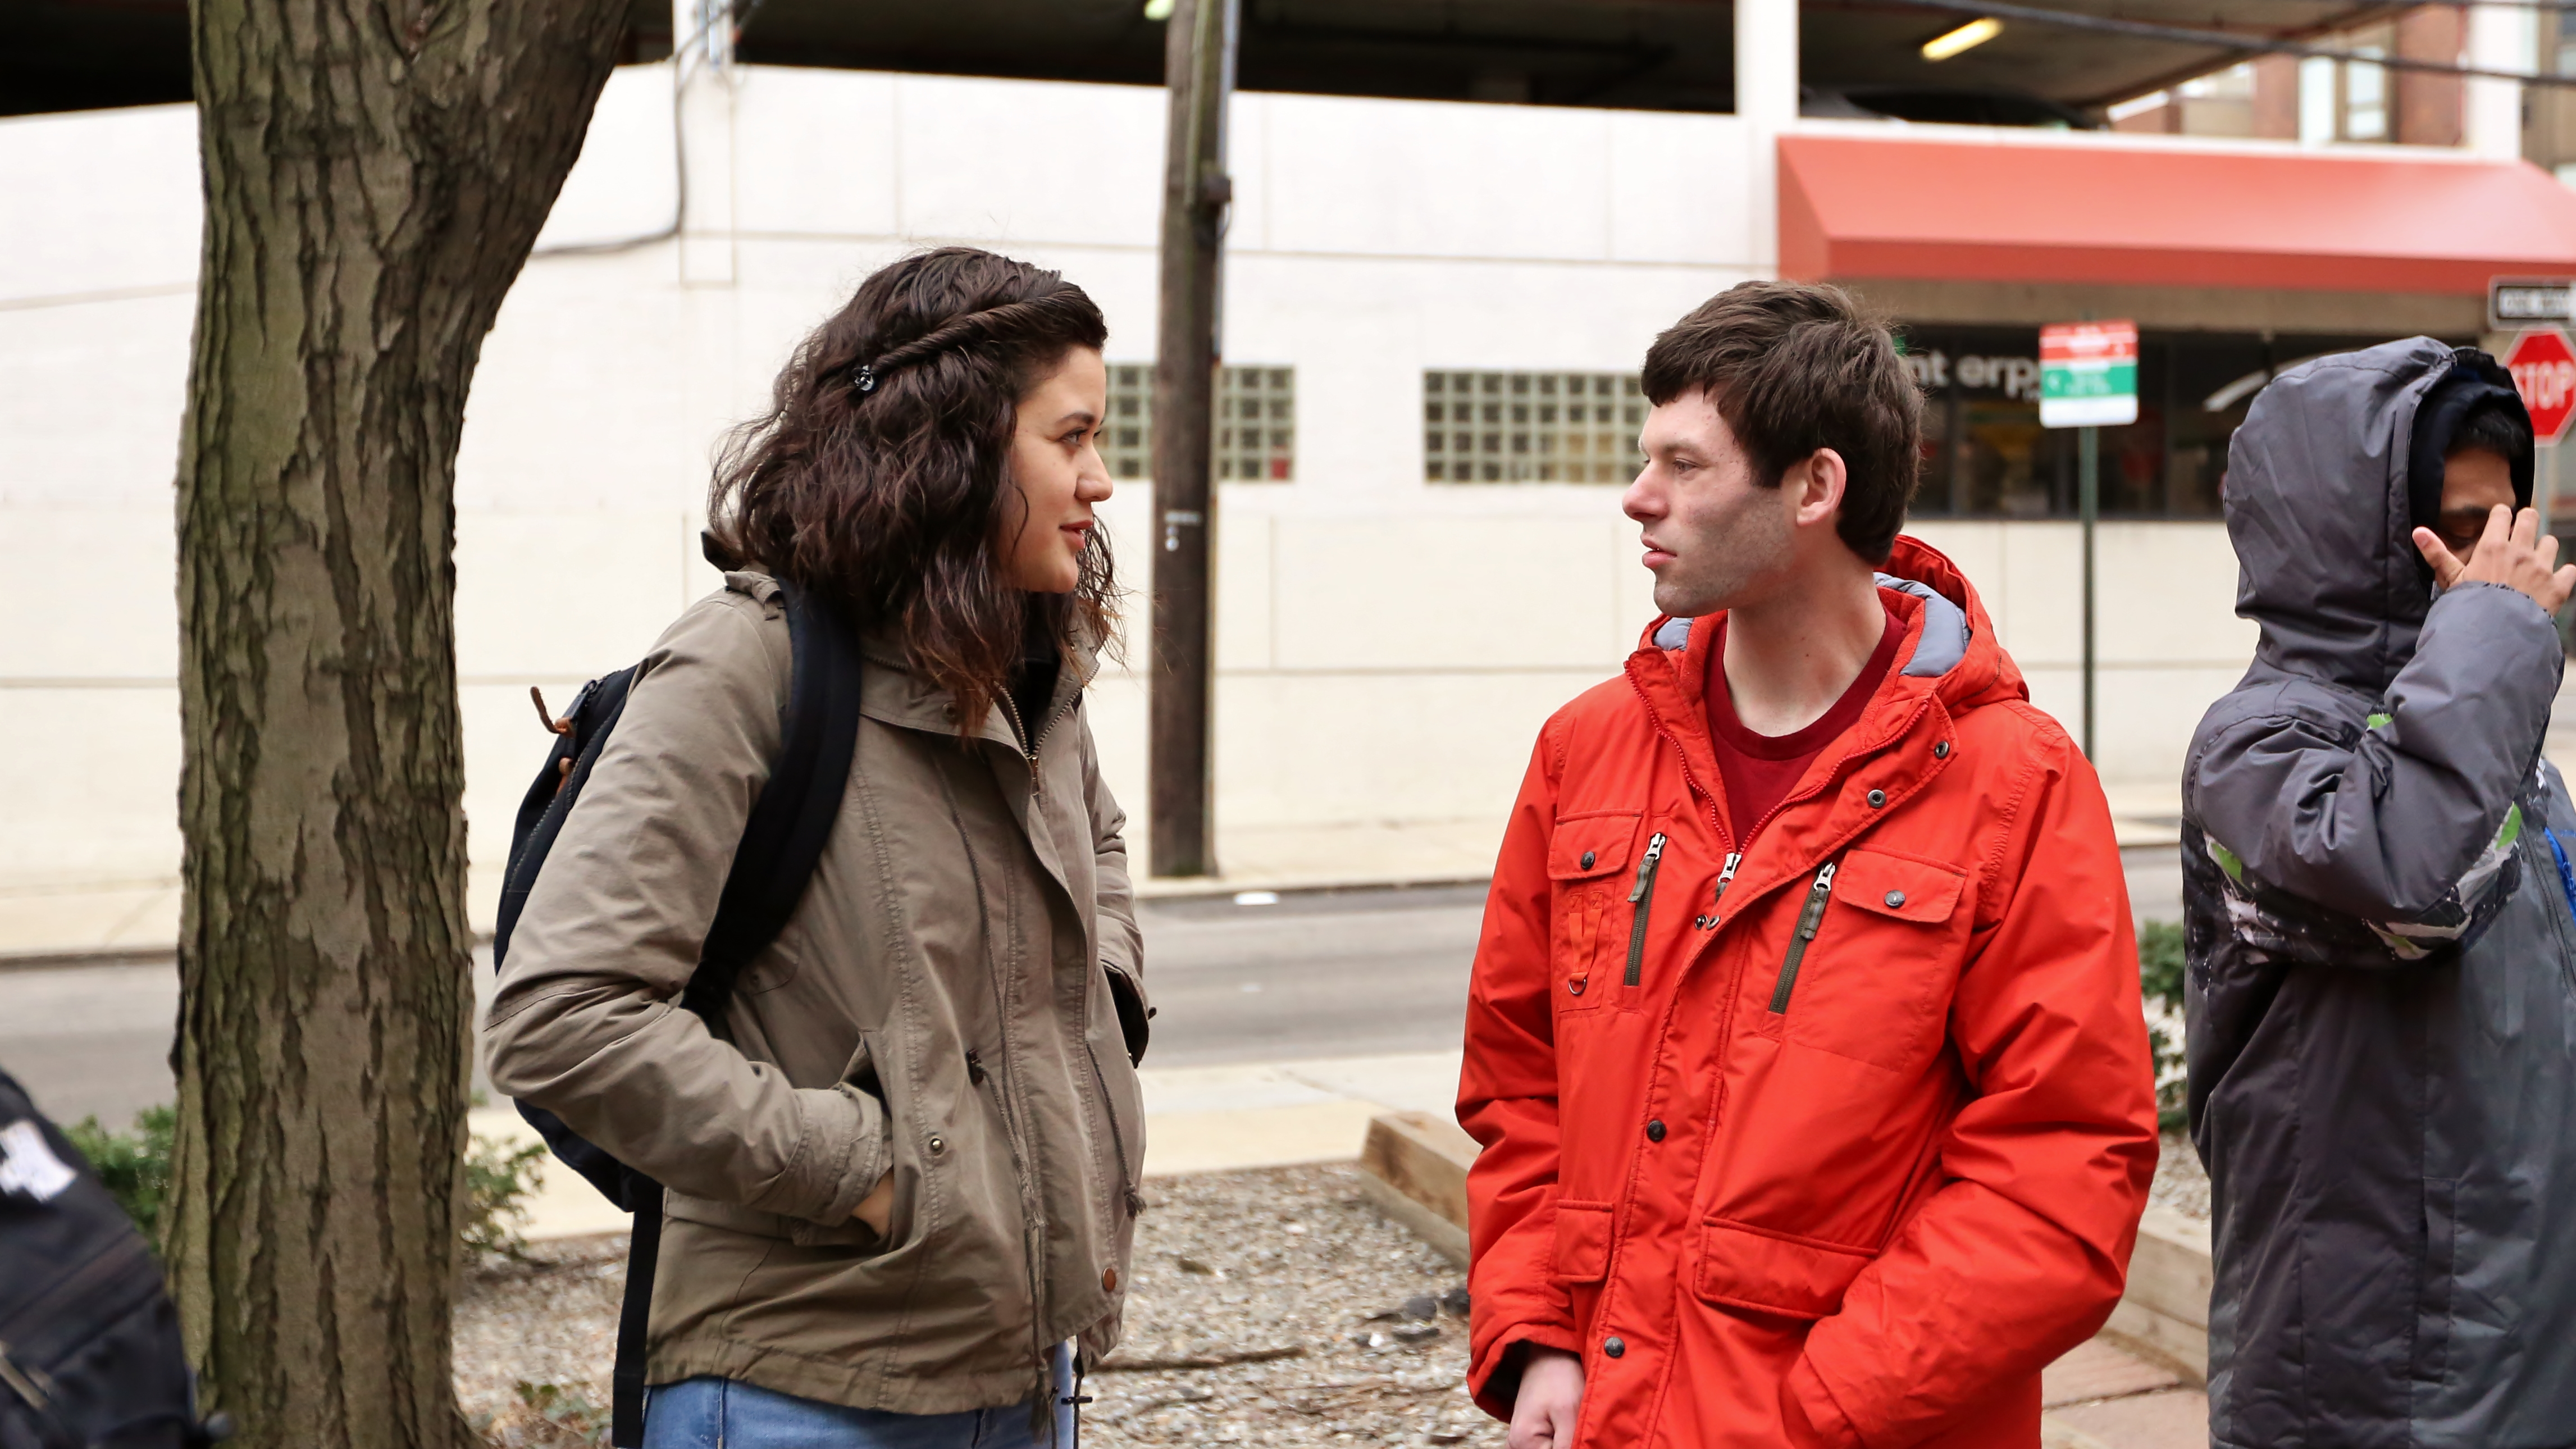 Chellsee Lee and Kyle wait for SEPTA Trolley at 36th and Sansom St.  Photo by Darryl Moran.